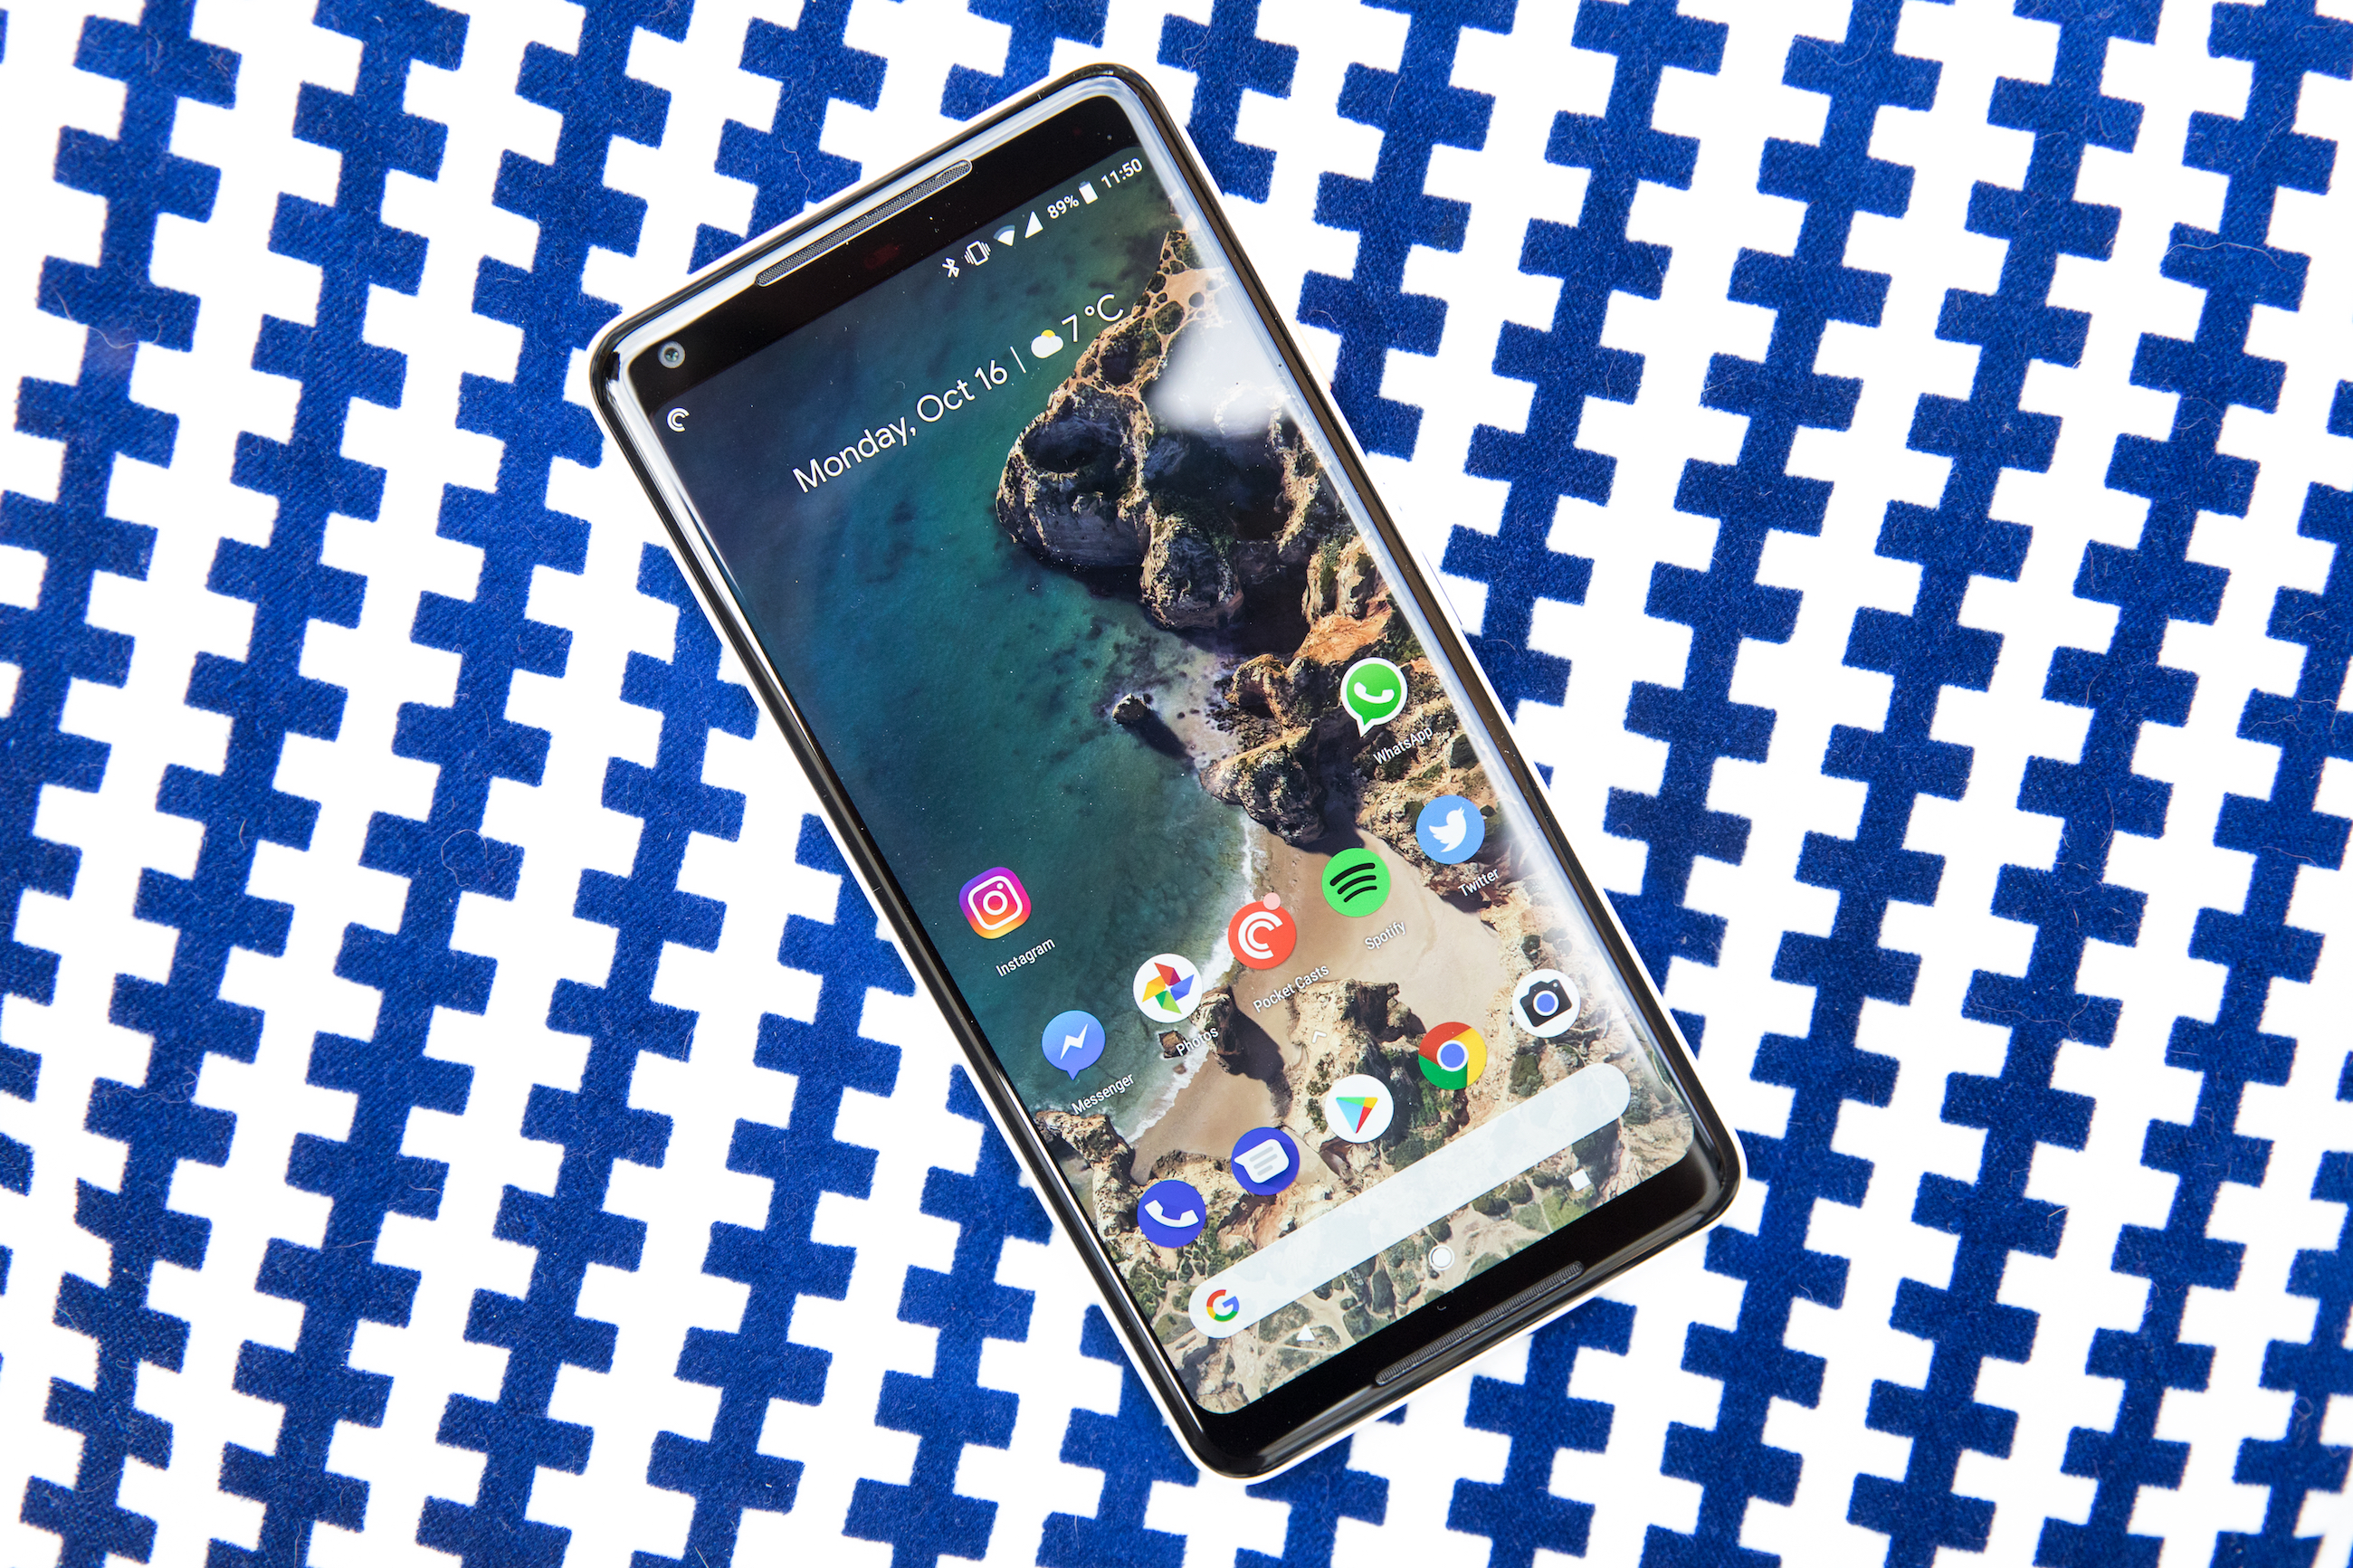 Google 'actively investigating' reports of OLED burn-in issues on Pixel 2 XL displays